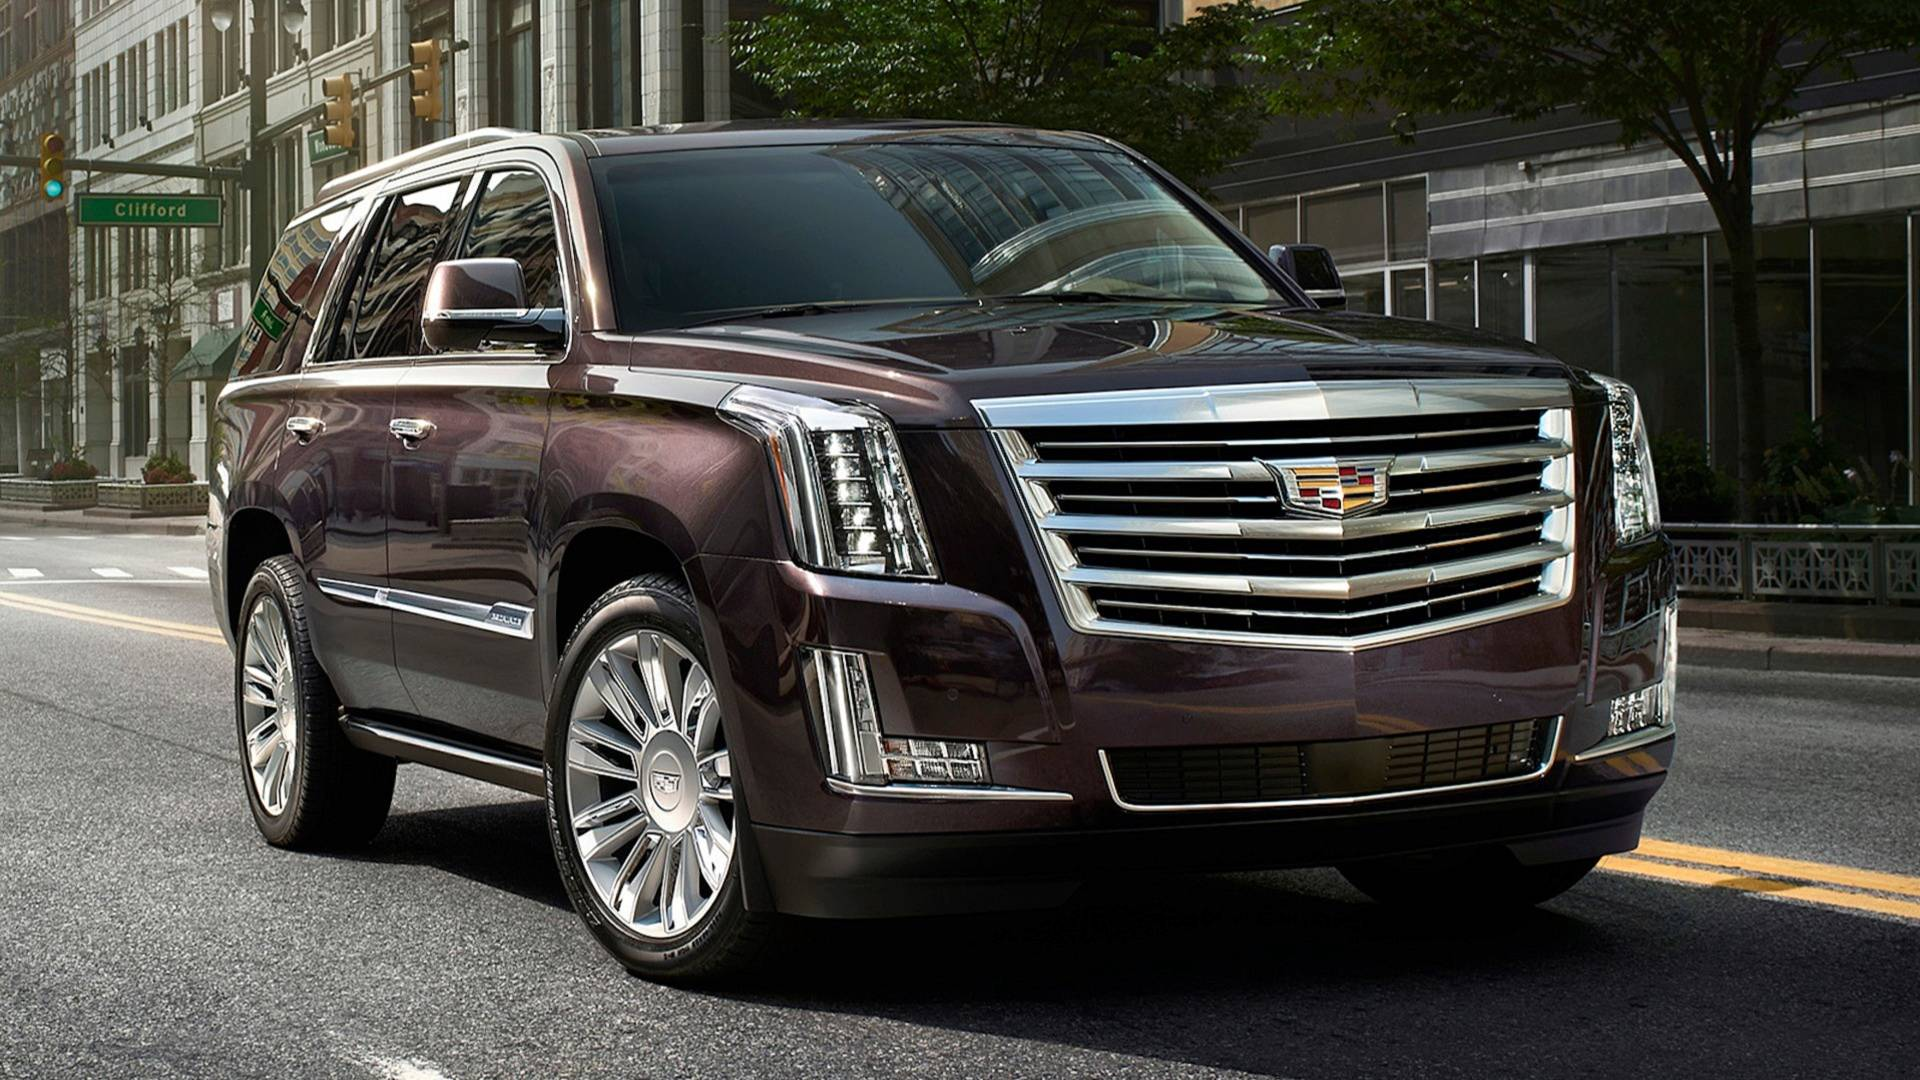 65 Great Price Of 2020 Cadillac Escalade Model for Price Of 2020 Cadillac Escalade